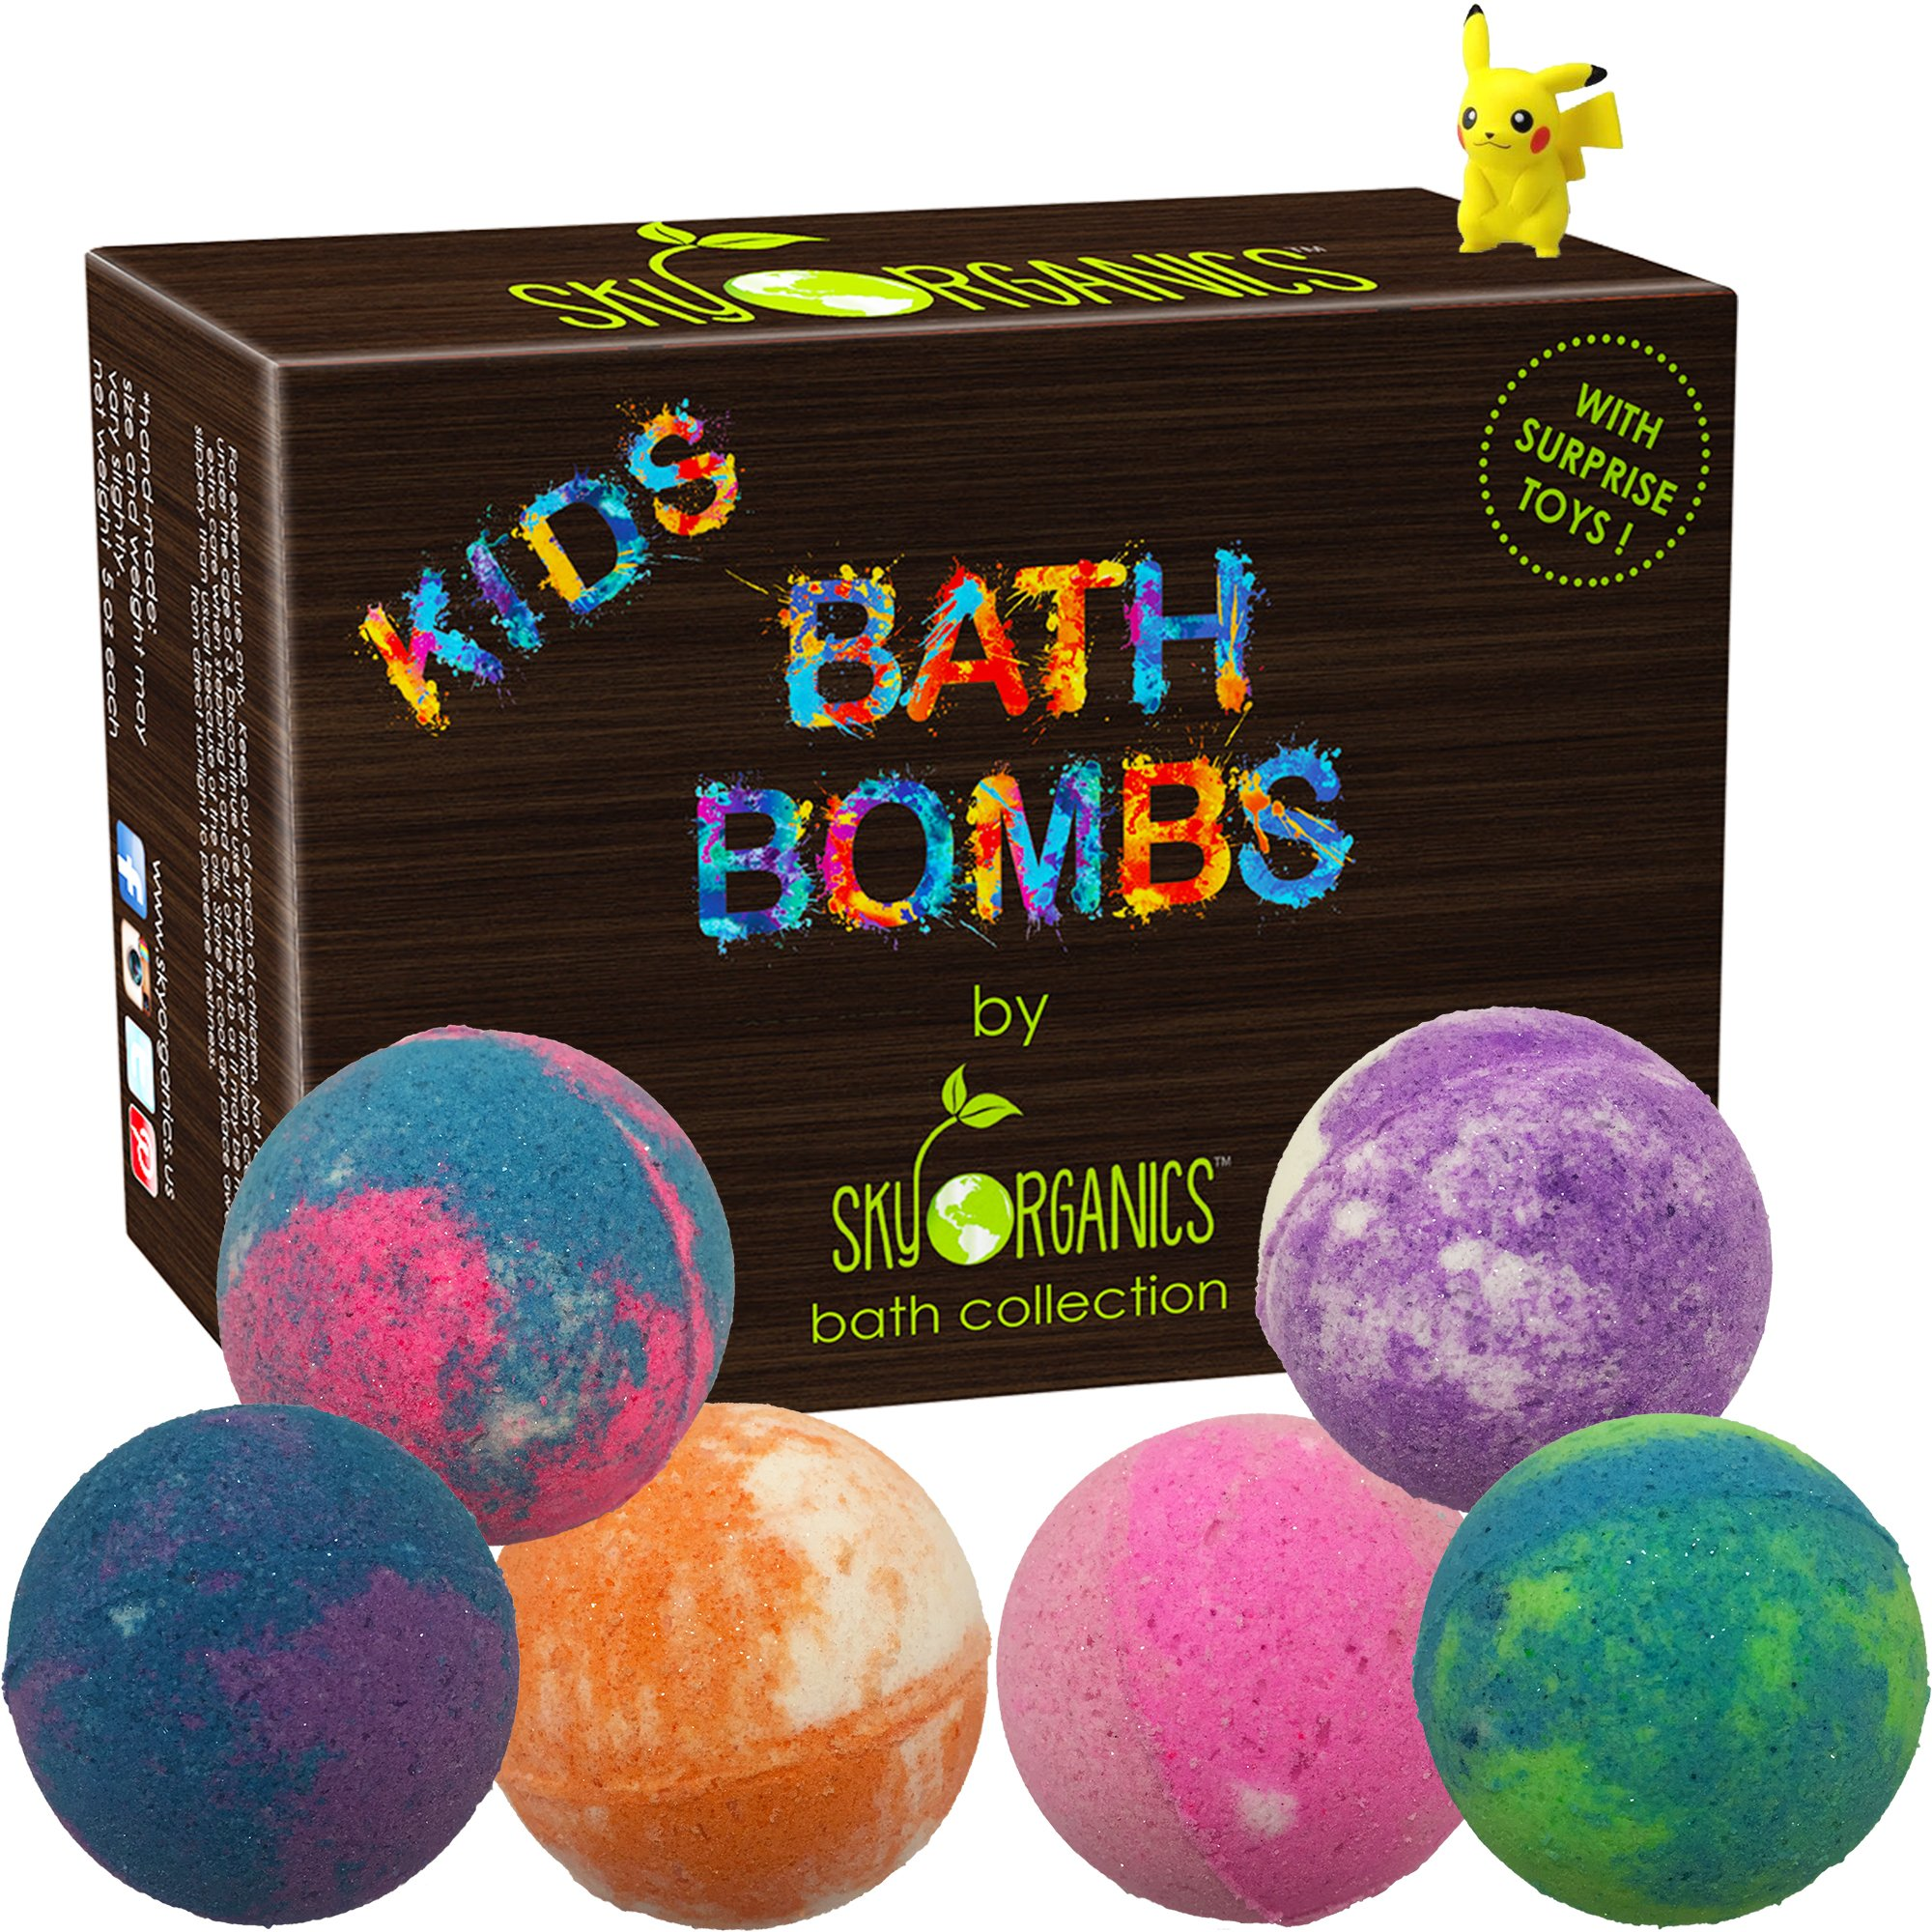 Kids Bath Bombs Gift Set with Surprise Toys, 6x5oz Fun Assorted Colored XL Bath Fizzies, Kid Safe, Gender Neutral with Organic Essential Oils -Handmade in the USA Organic Bubble Bath Fizzy